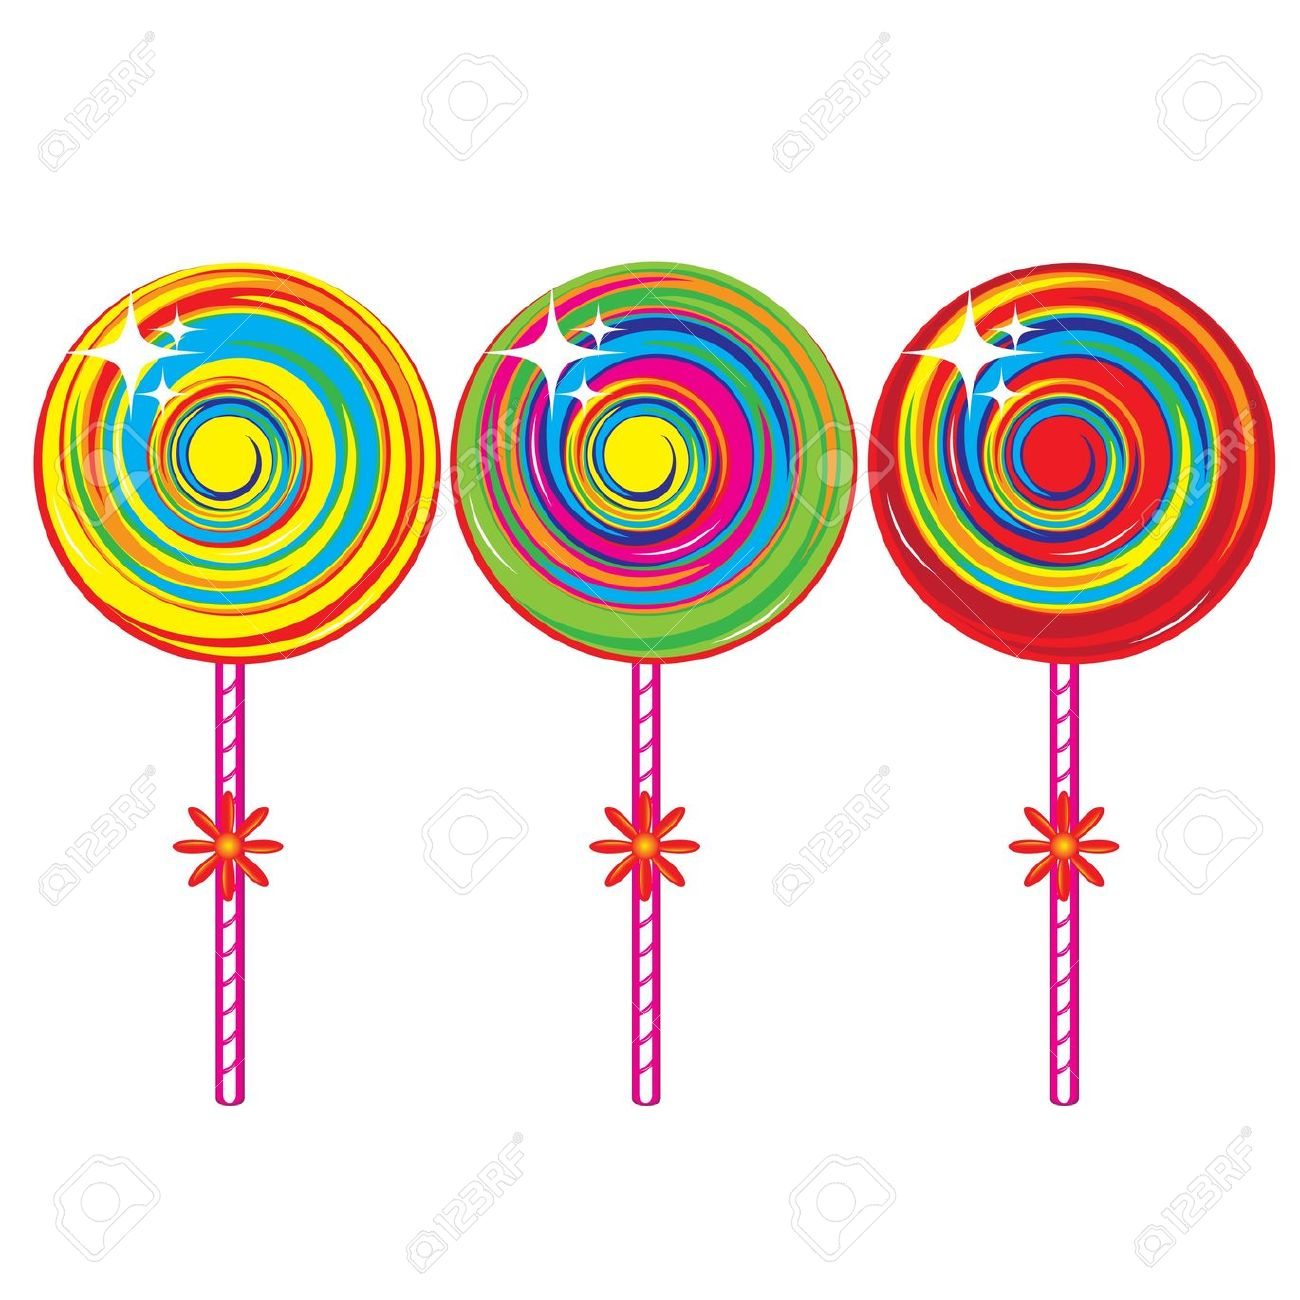 4,658 Suckers Stock Vector Illustration And Royalty Free Suckers.